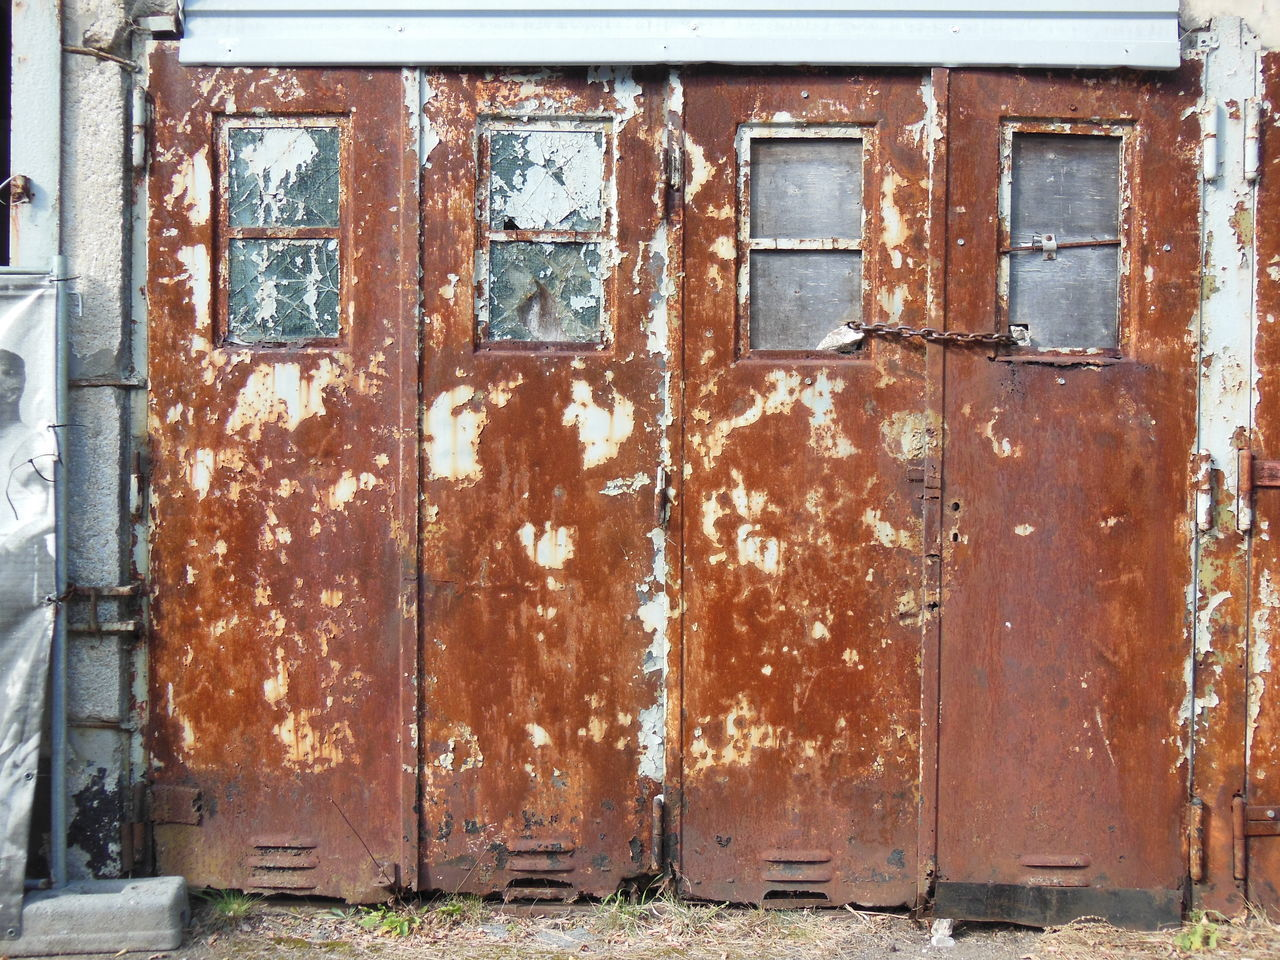 OLD RUSTY DOOR OF BUILDING